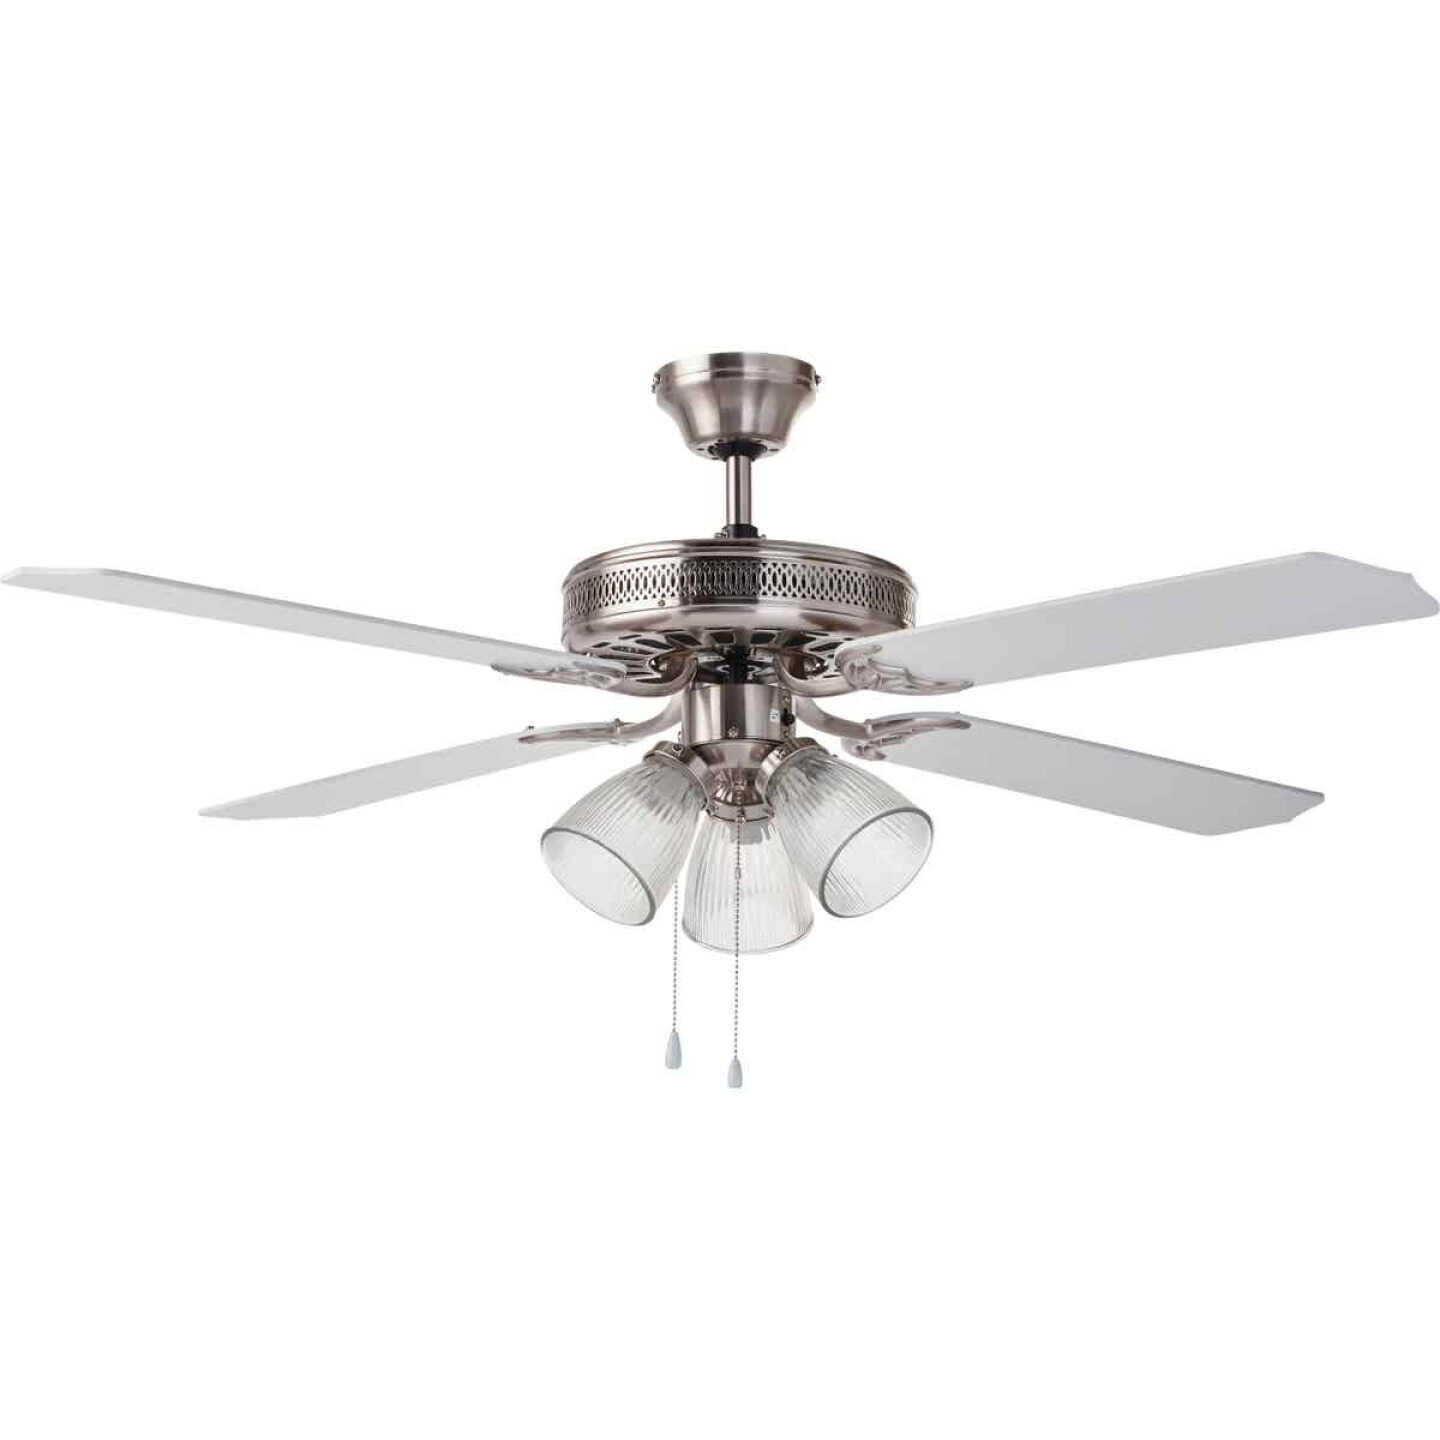 Home Impressions Chateau 52 In. Brushed Nickel Ceiling Fan with Light Kit Image 2